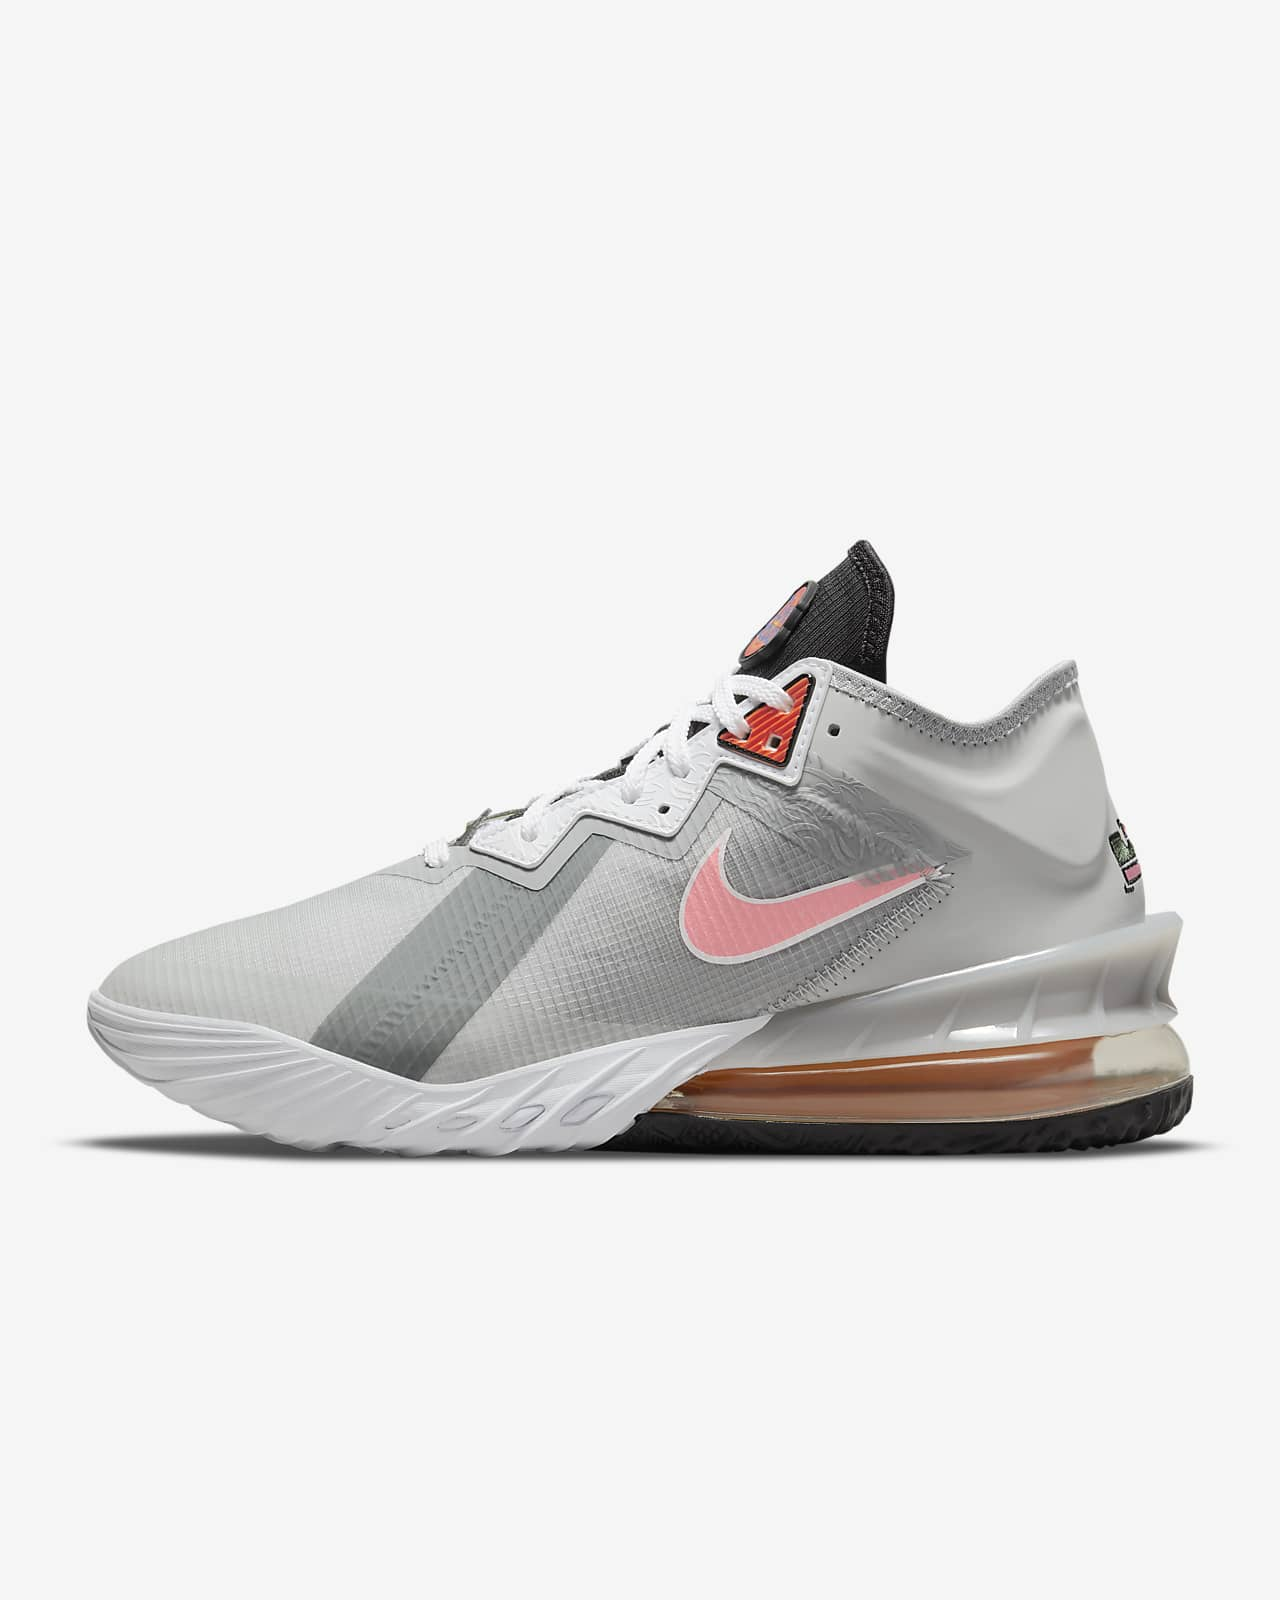 Chaussure de basketball LeBron18 Low «Bugs vs Marvin»